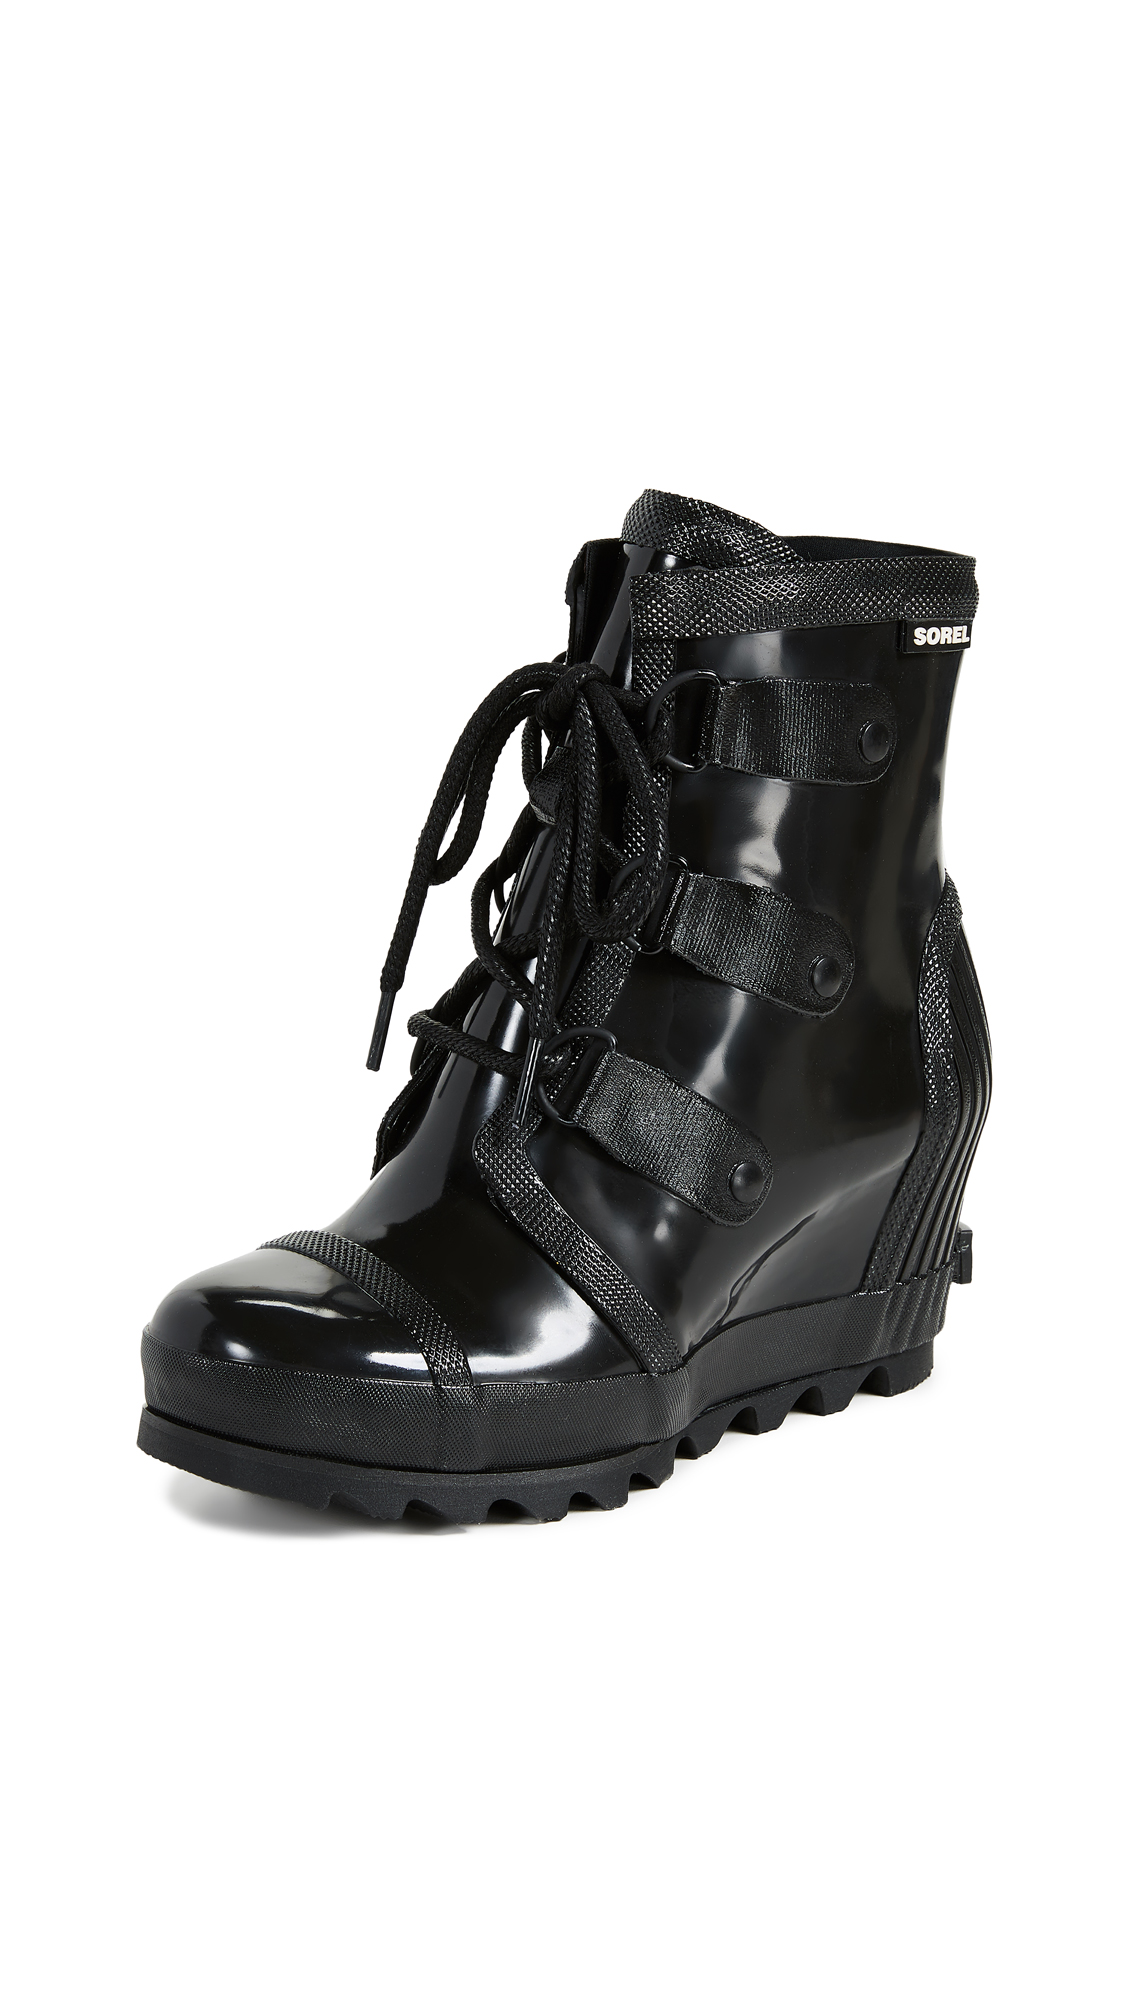 Sorel Joan Rain Wedge Gloss Boots - Black/Sea Salt